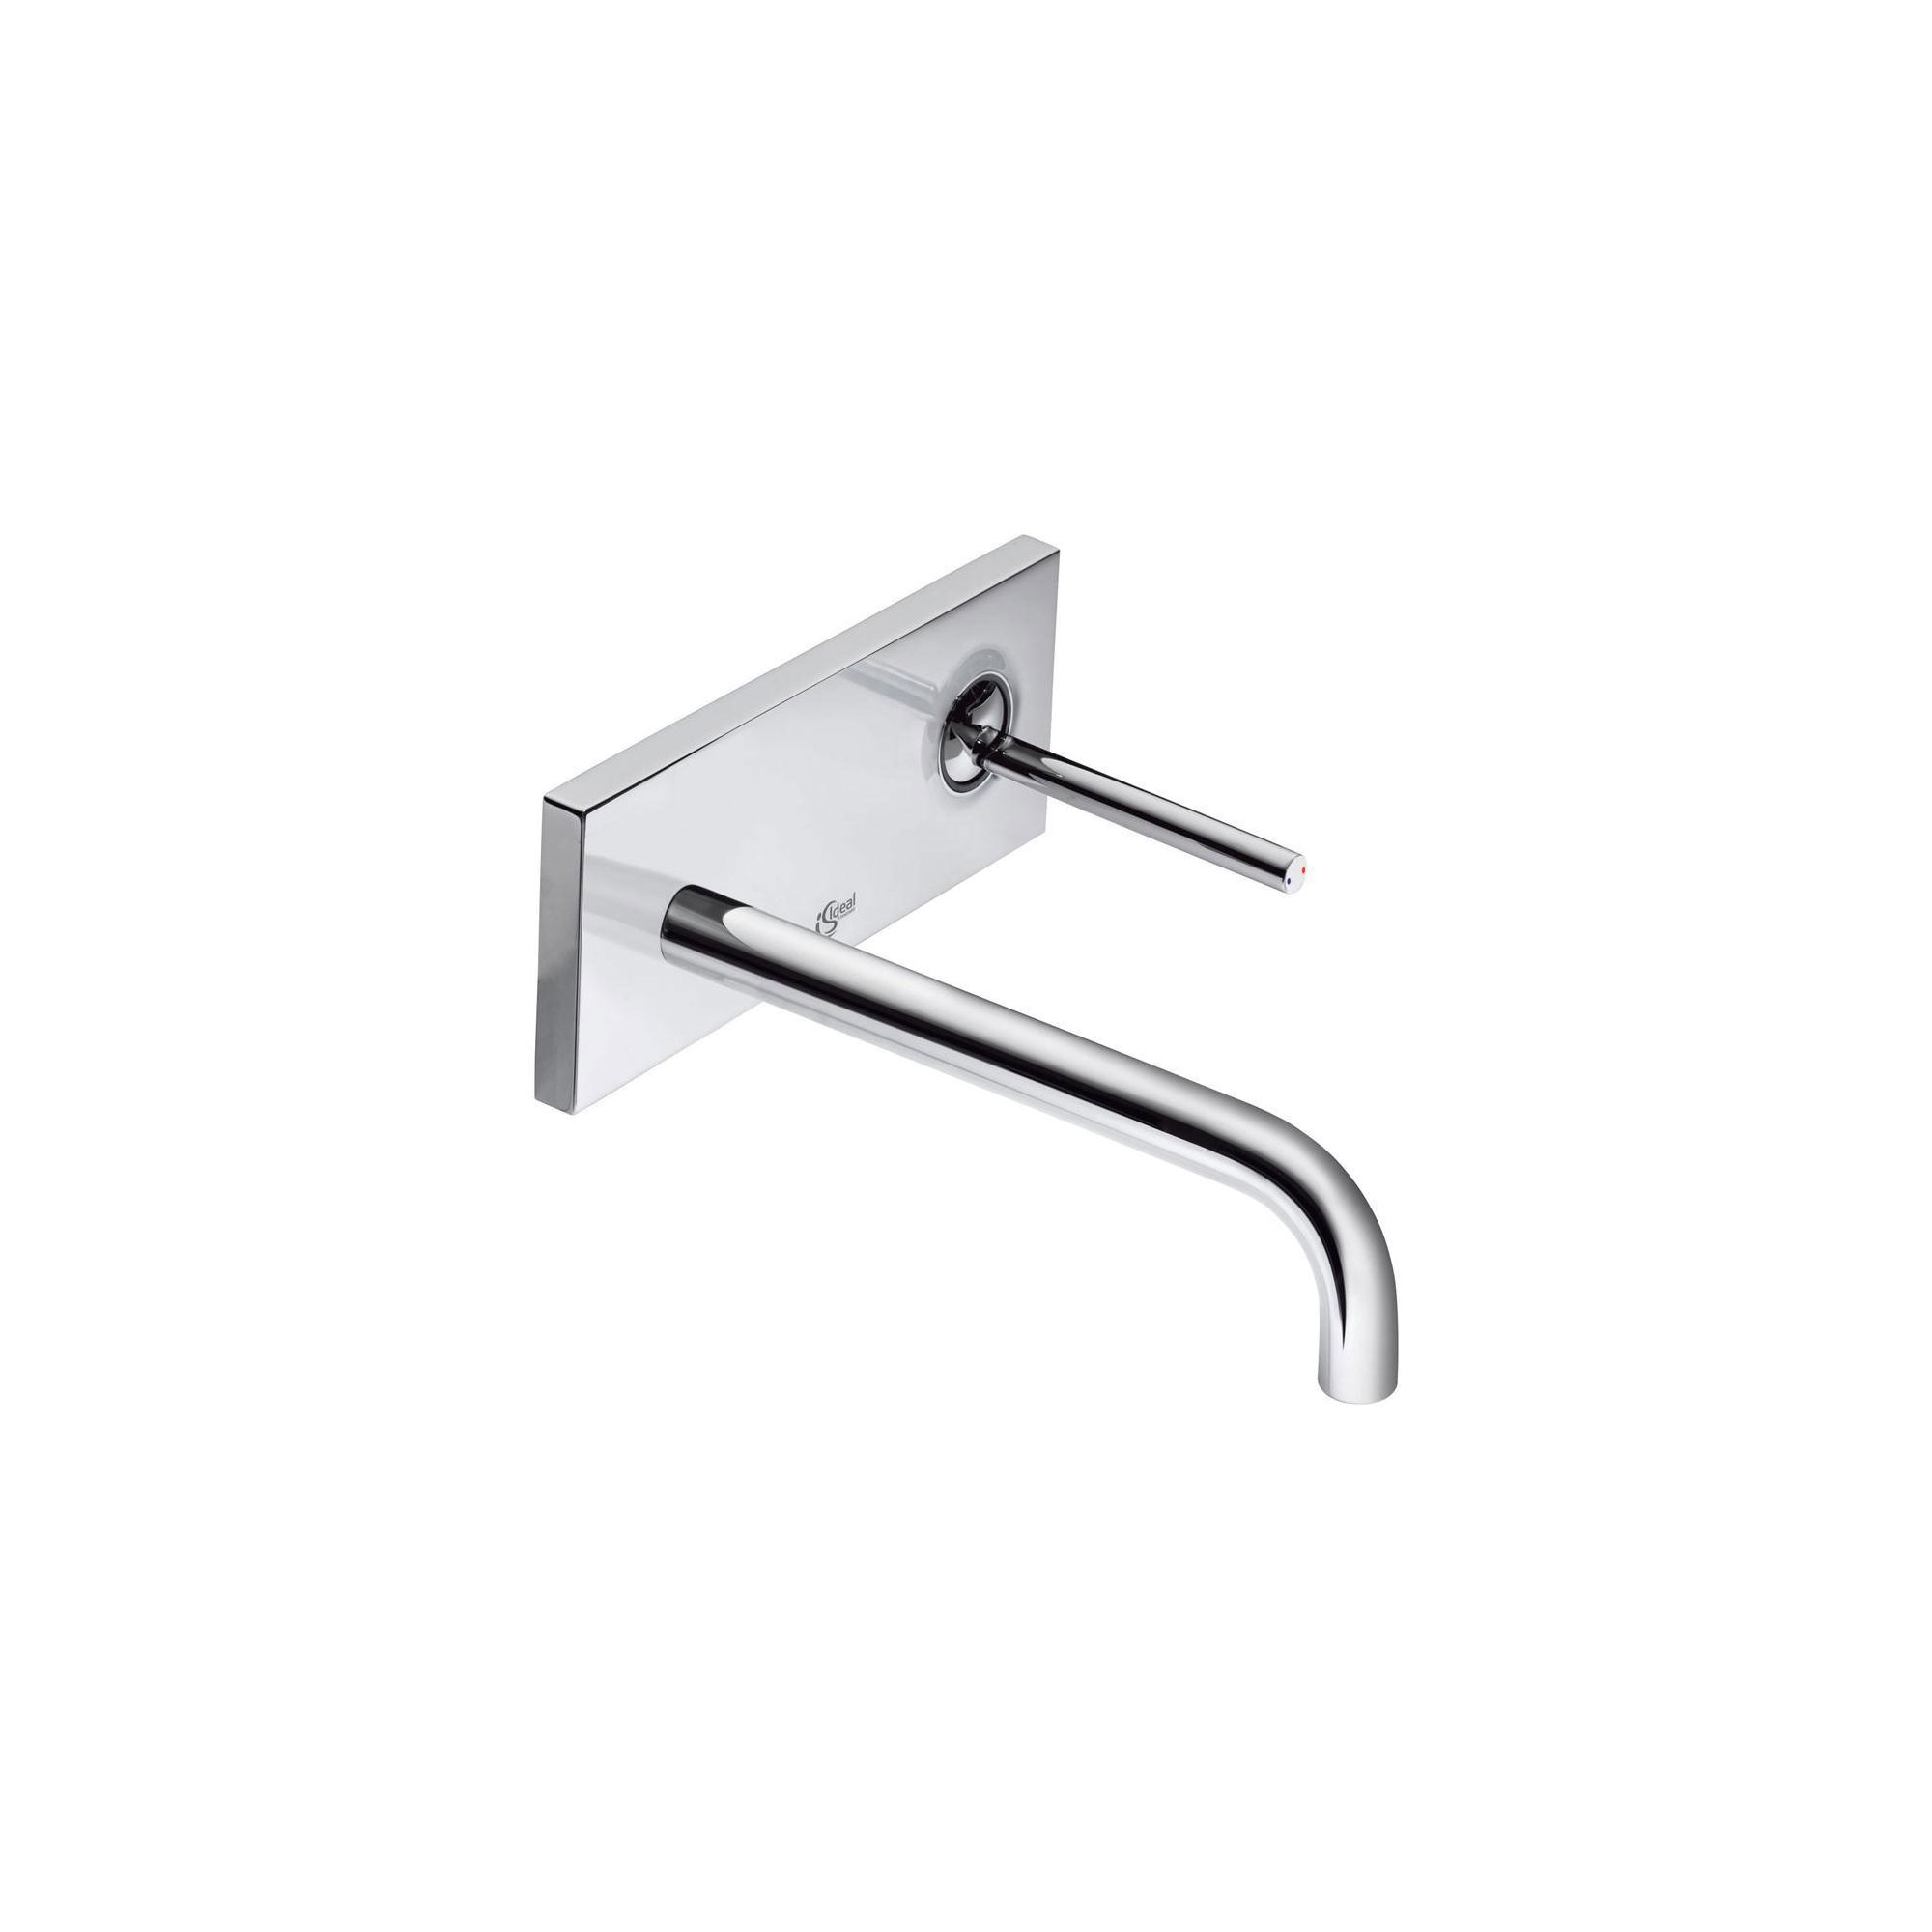 Ideal Standard Simply U 2 Tap Hole Wall-Mounted Cylindrical Spout Basin Mixer Tap with Rectangular Backplate at Tesco Direct